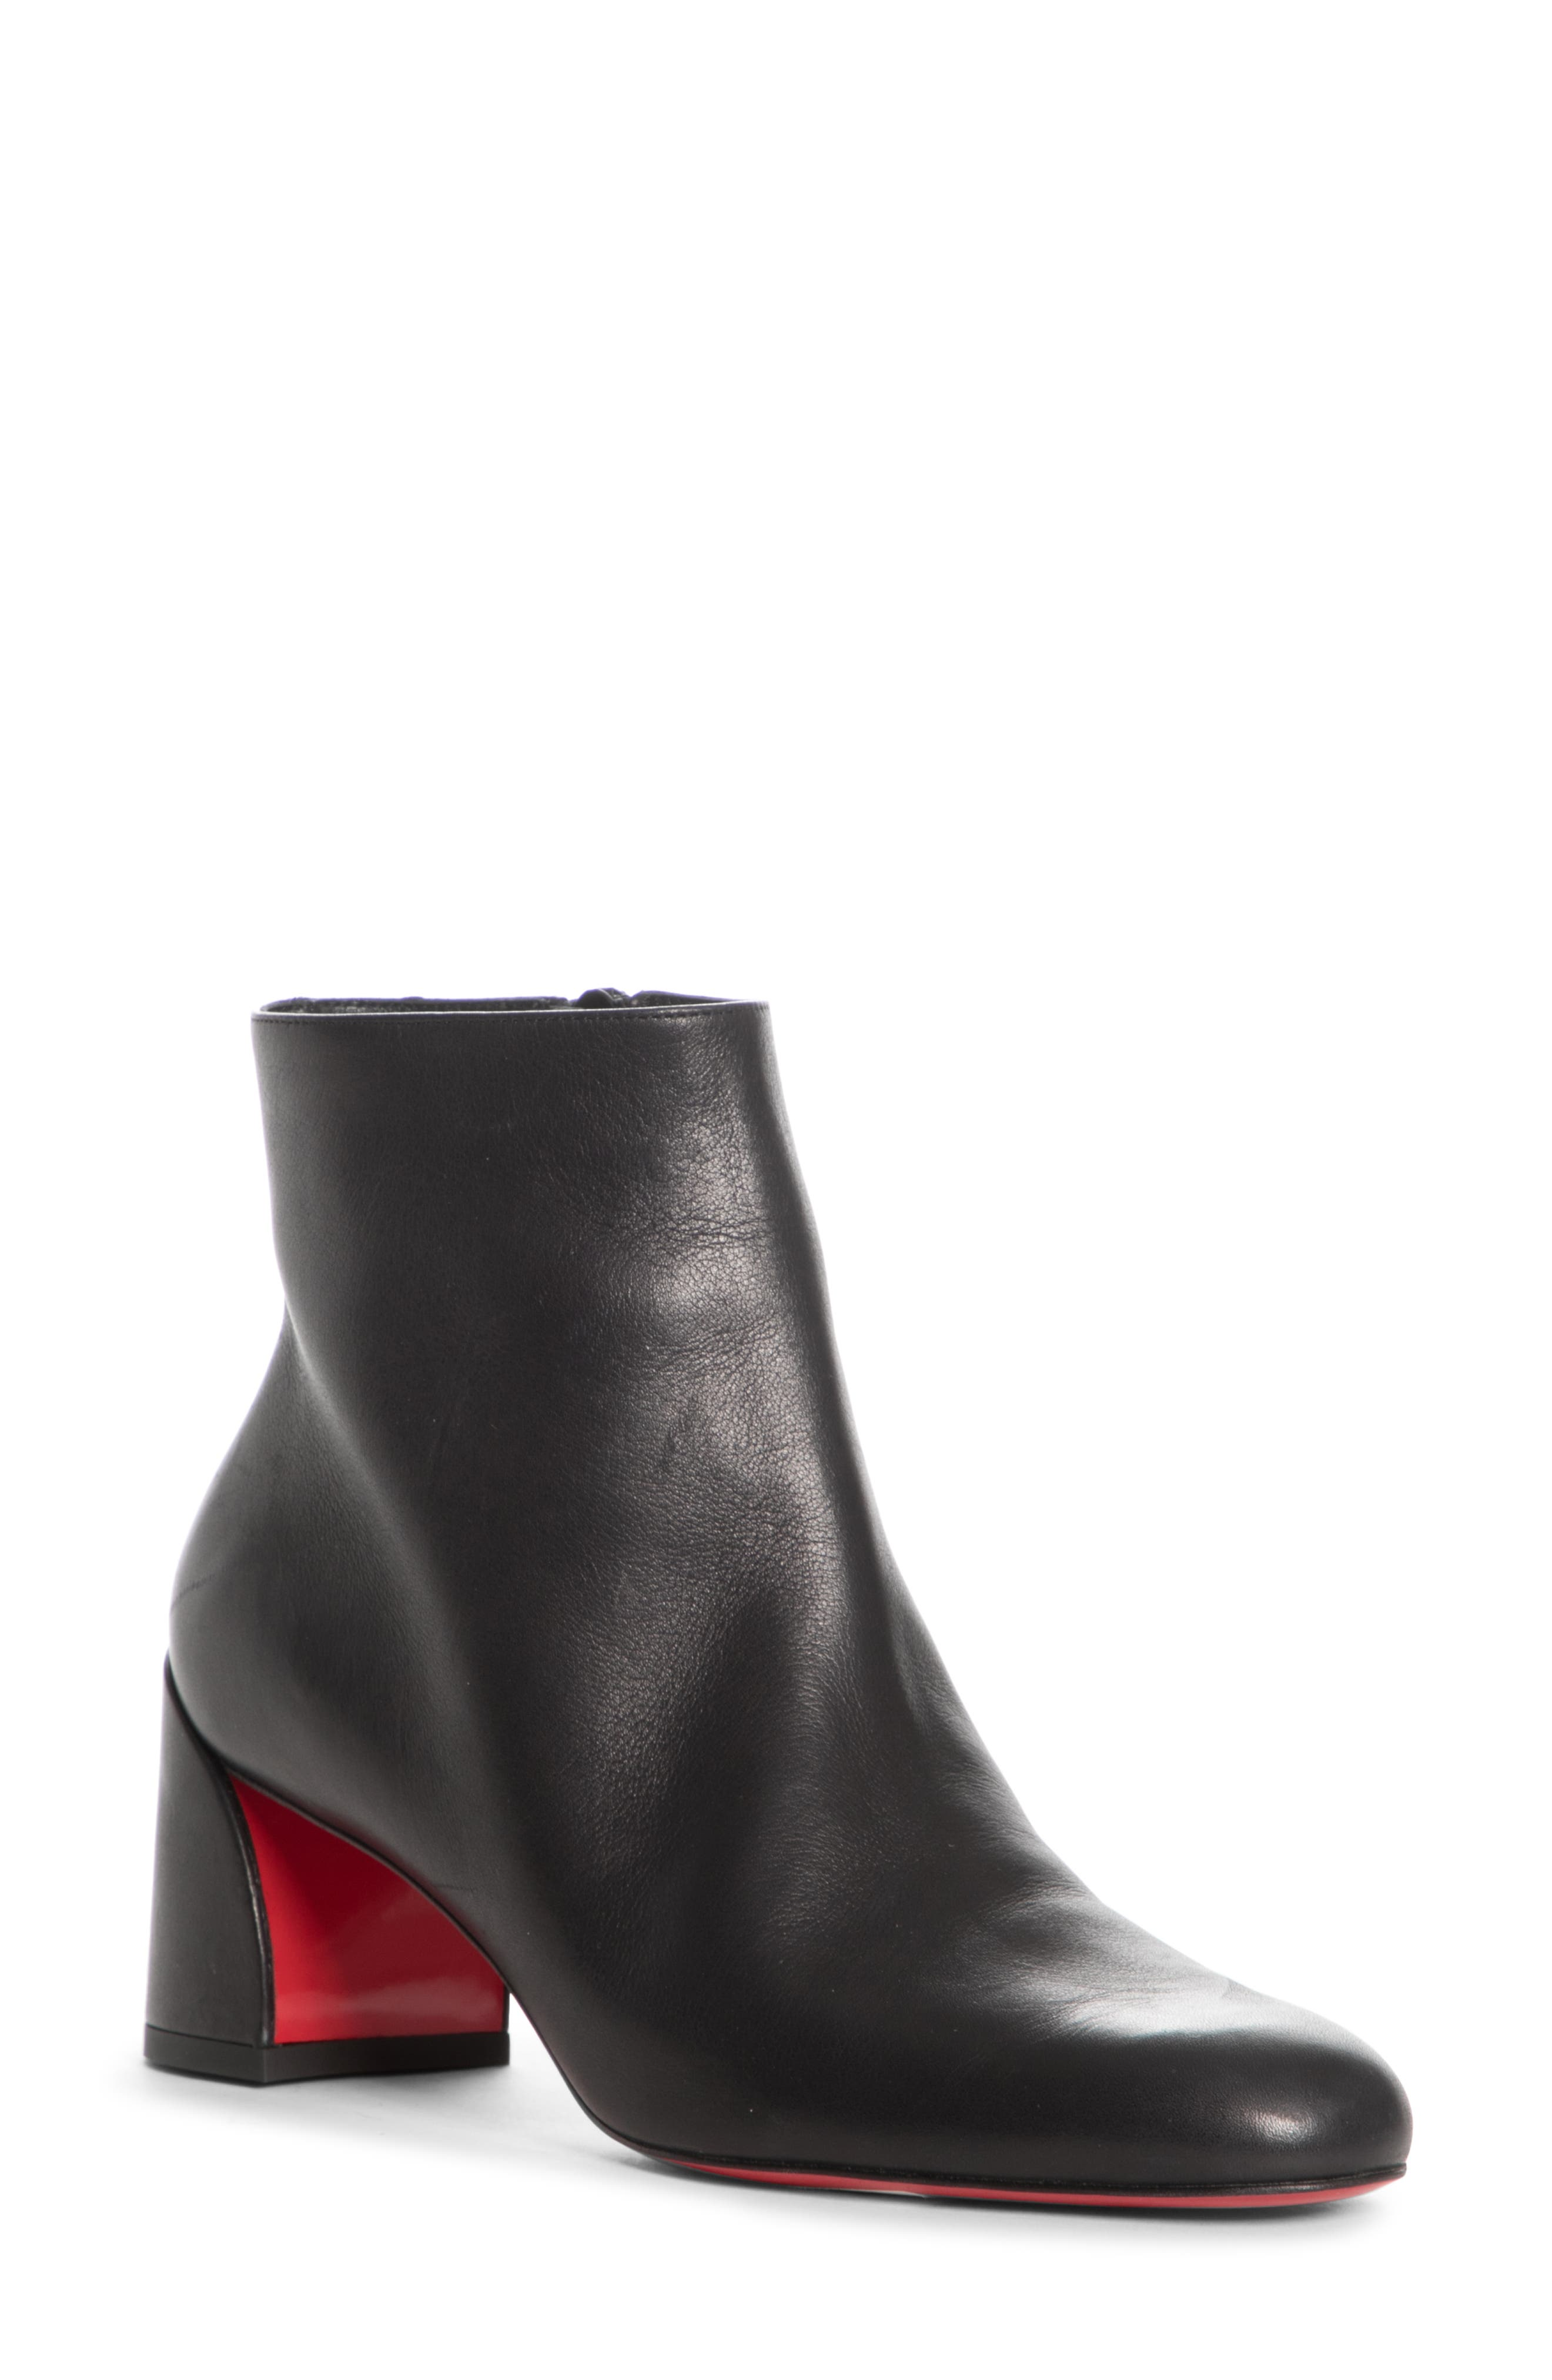 A curvy architectural heel shows off a glimpse of the Louboutin-red sole on this walkable, around-town bootie done in supple Italian leather. Style Name: Christian Louboutin Turela Bootie (Women). Style Number: 5898684. Available in stores.